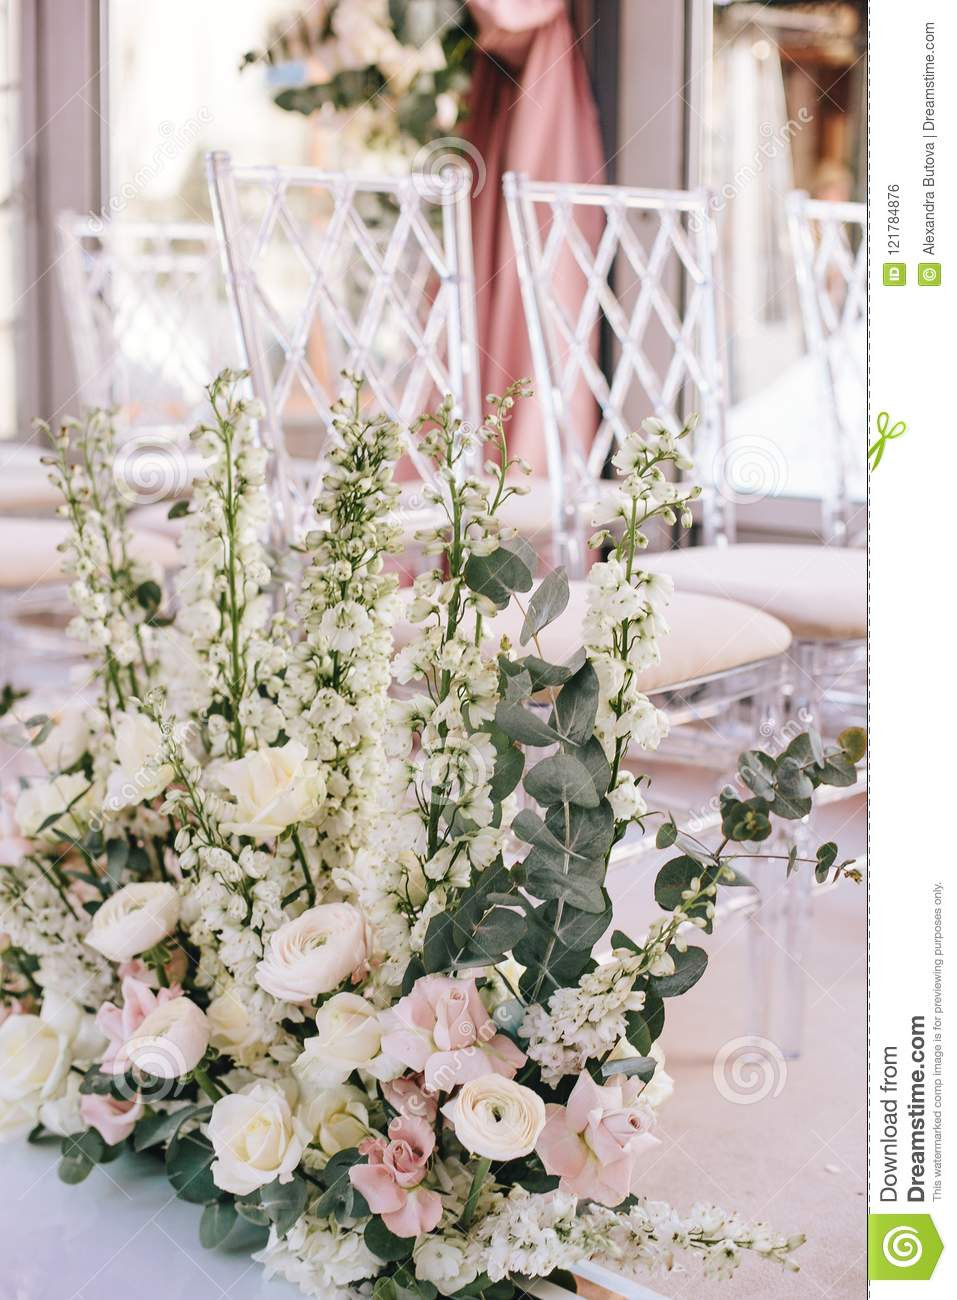 Flower Arrangement Of Pink Roses Buttercups And White Bells And